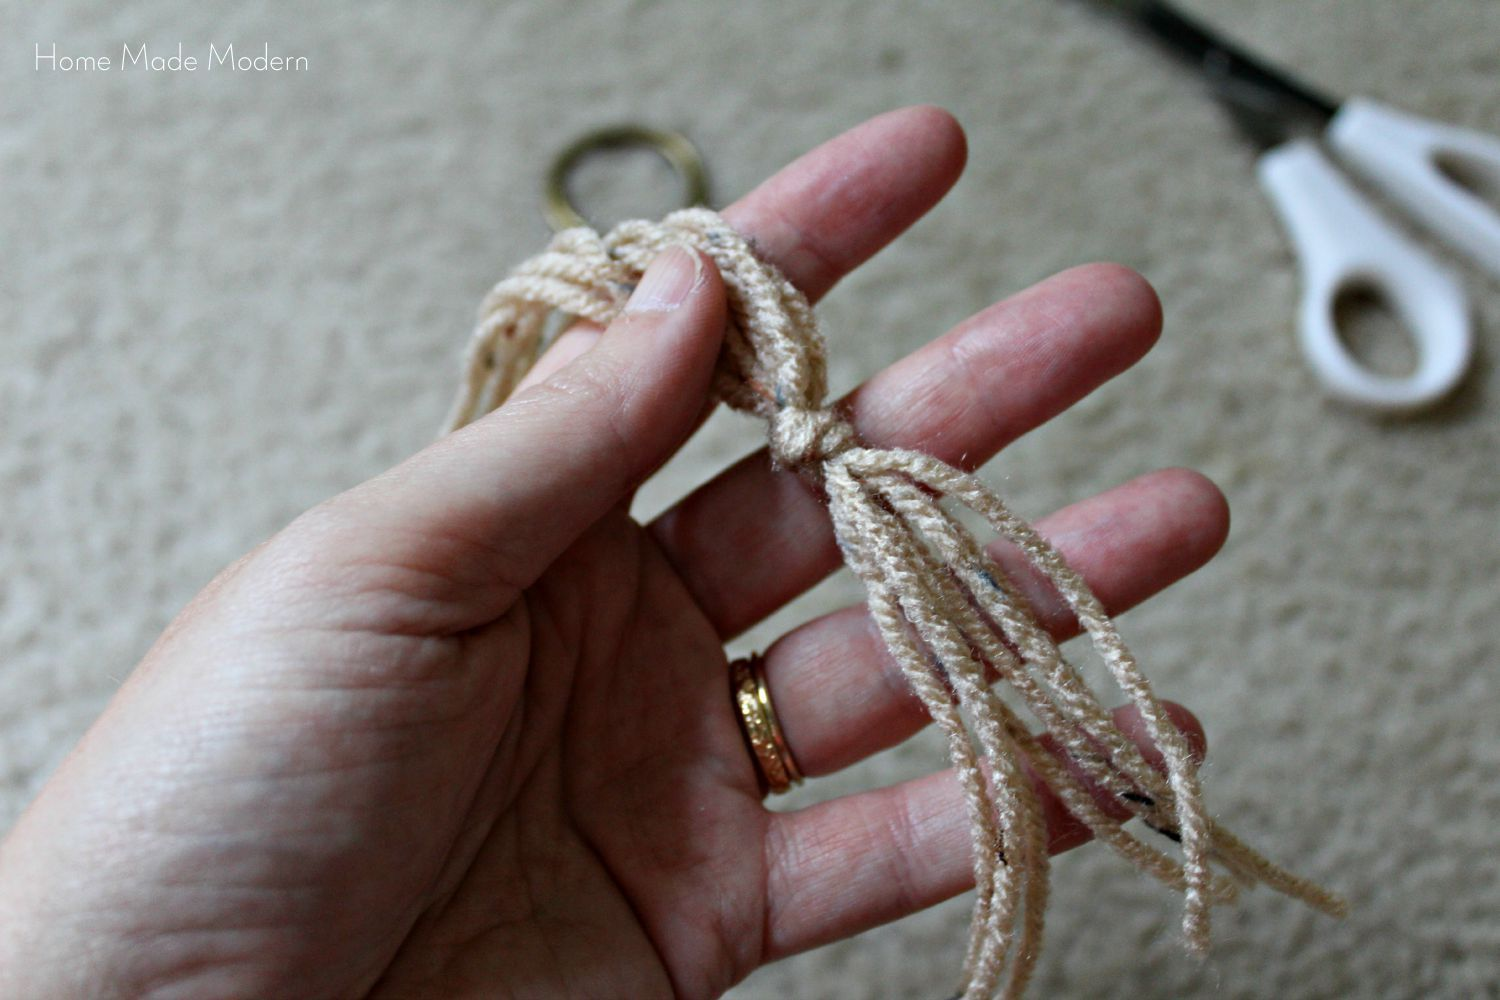 Making a knot for the macrame hanging plant holder